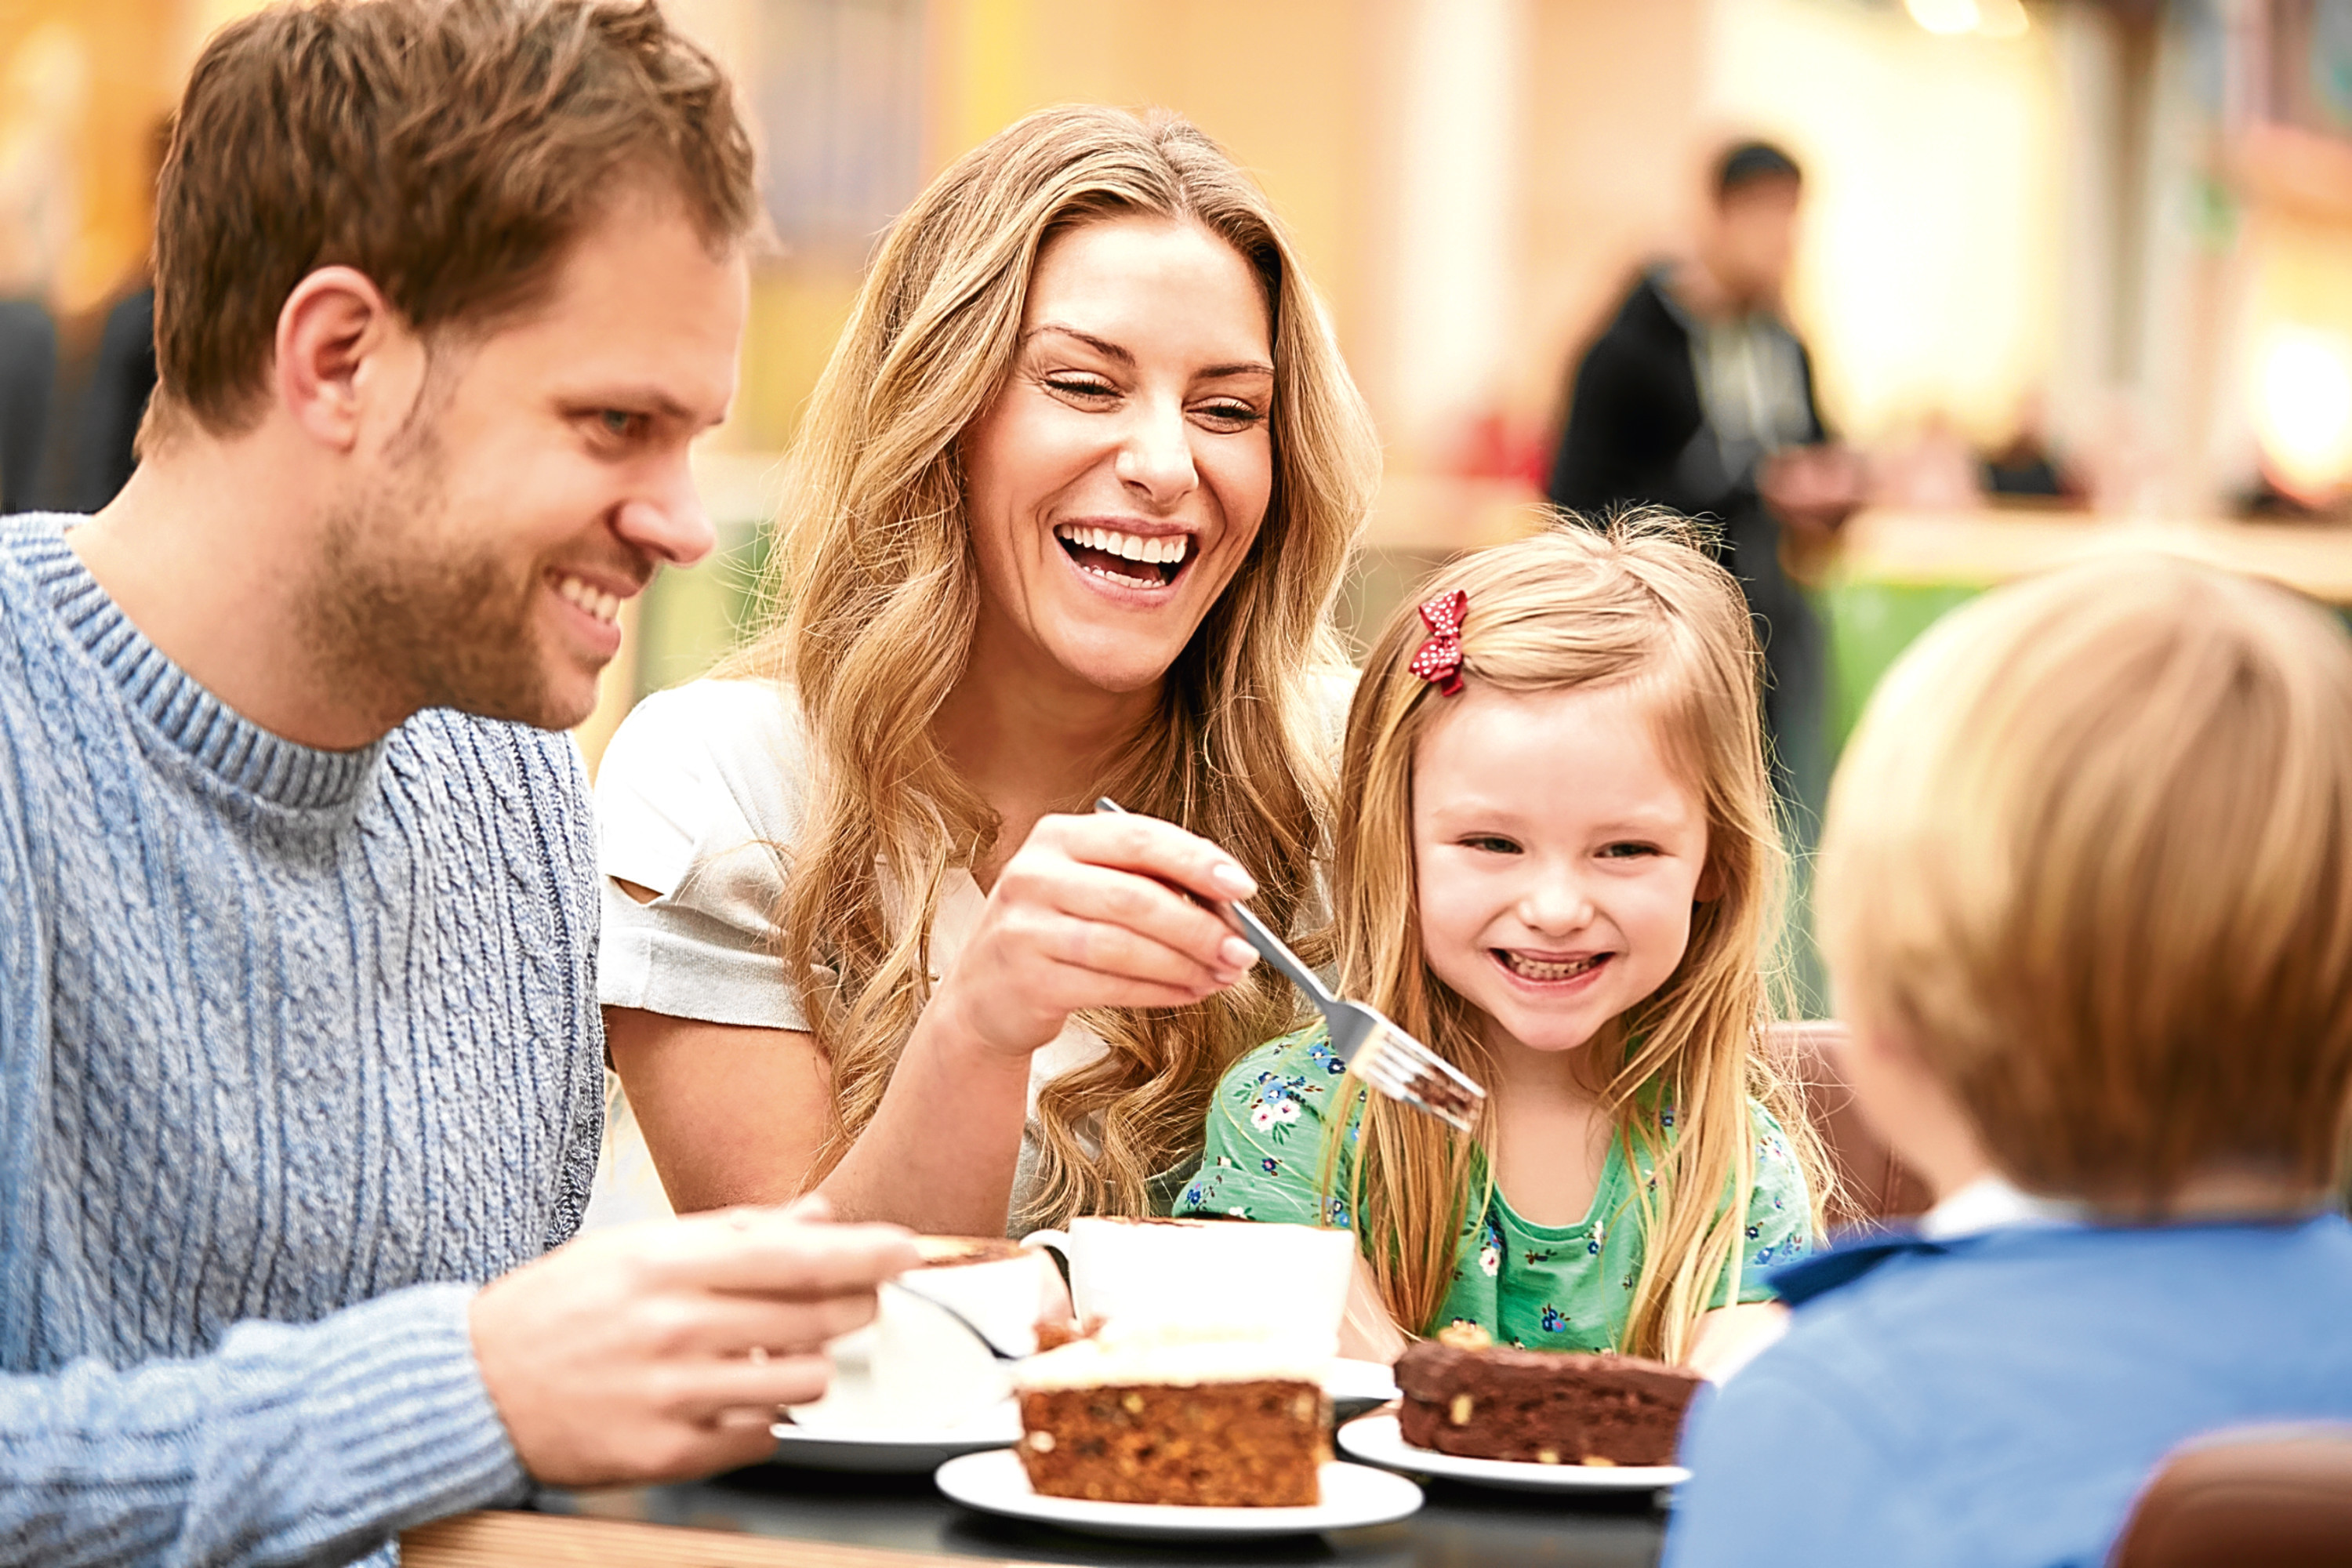 Family Enjoying Snack In Café Together Smiling